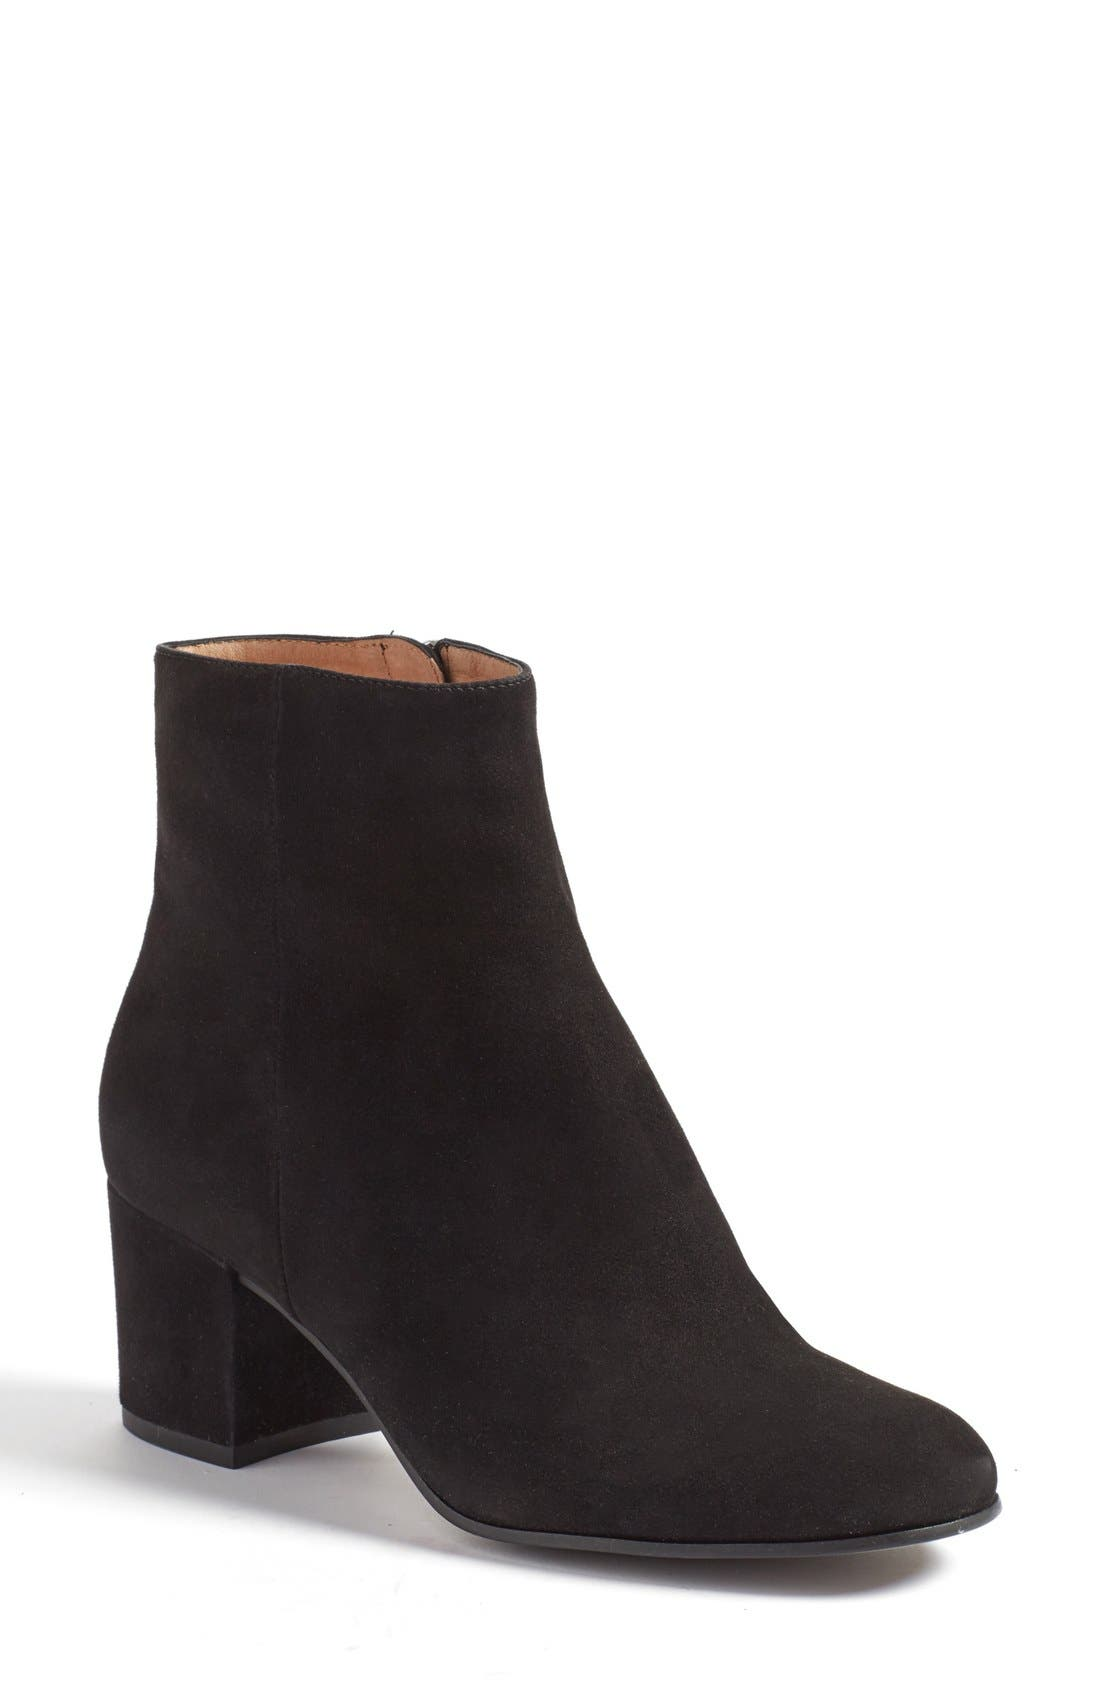 'Cori' Round Toe Bootie,                         Main,                         color, 001